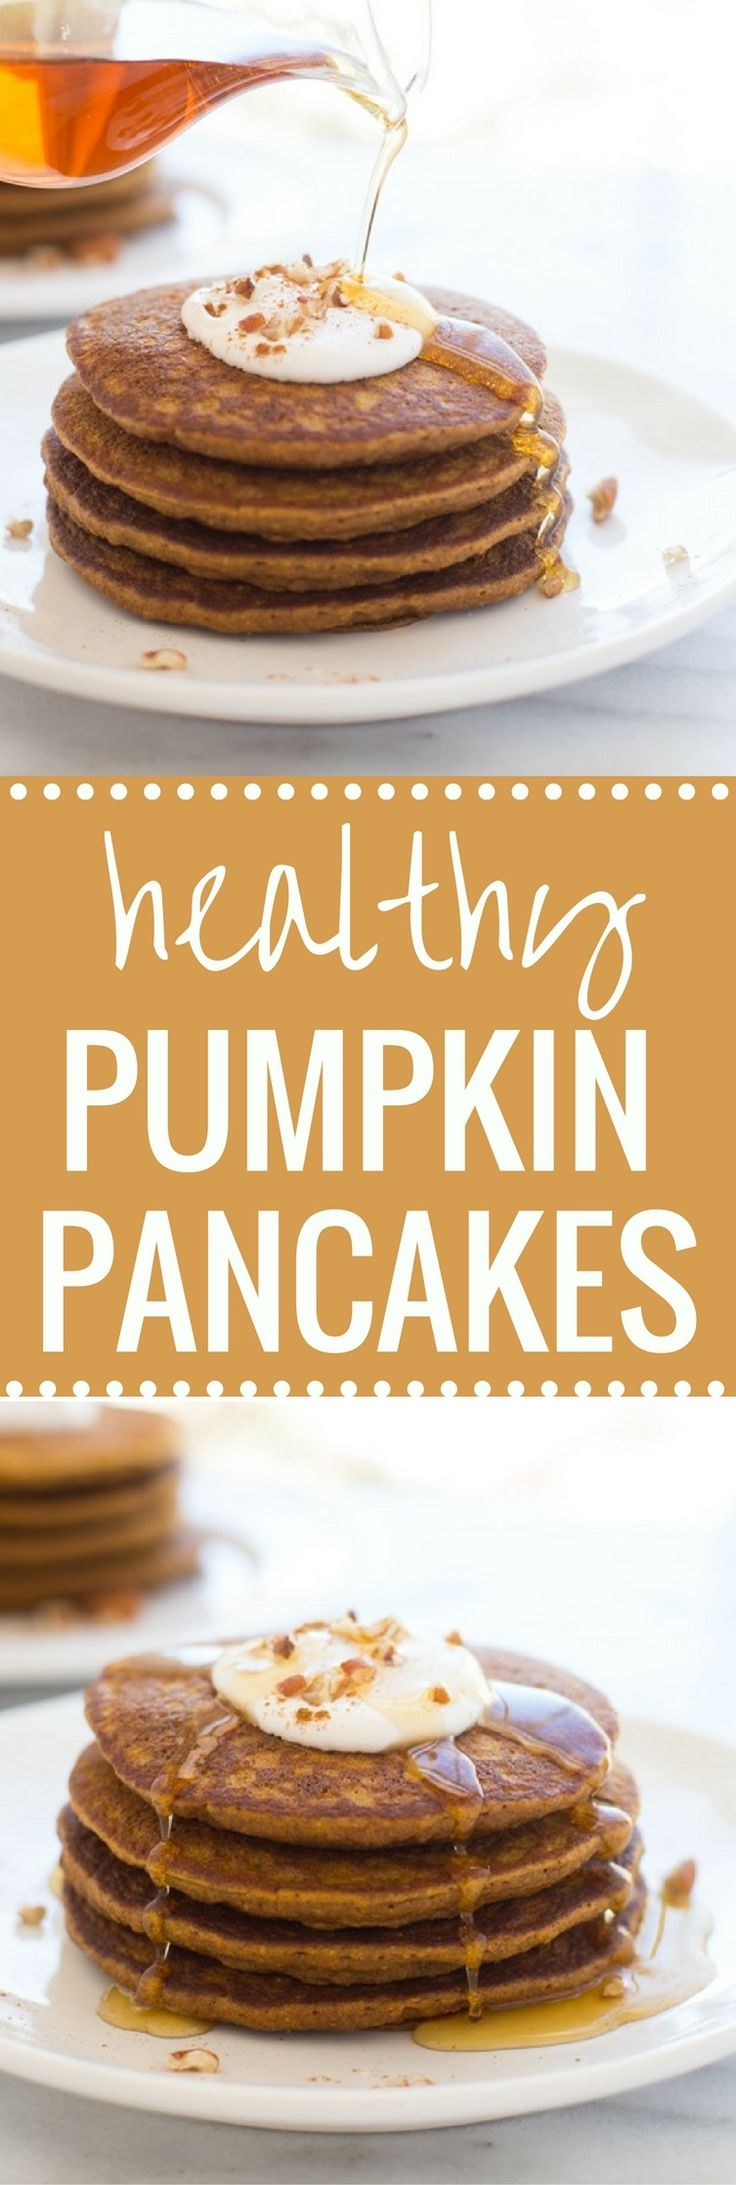 Healthy Pumpkin Pie Pancakes- tastes AMAZING and are made with healthy ingredients that will keep you full for hours! (gluten-free & dairy-free)